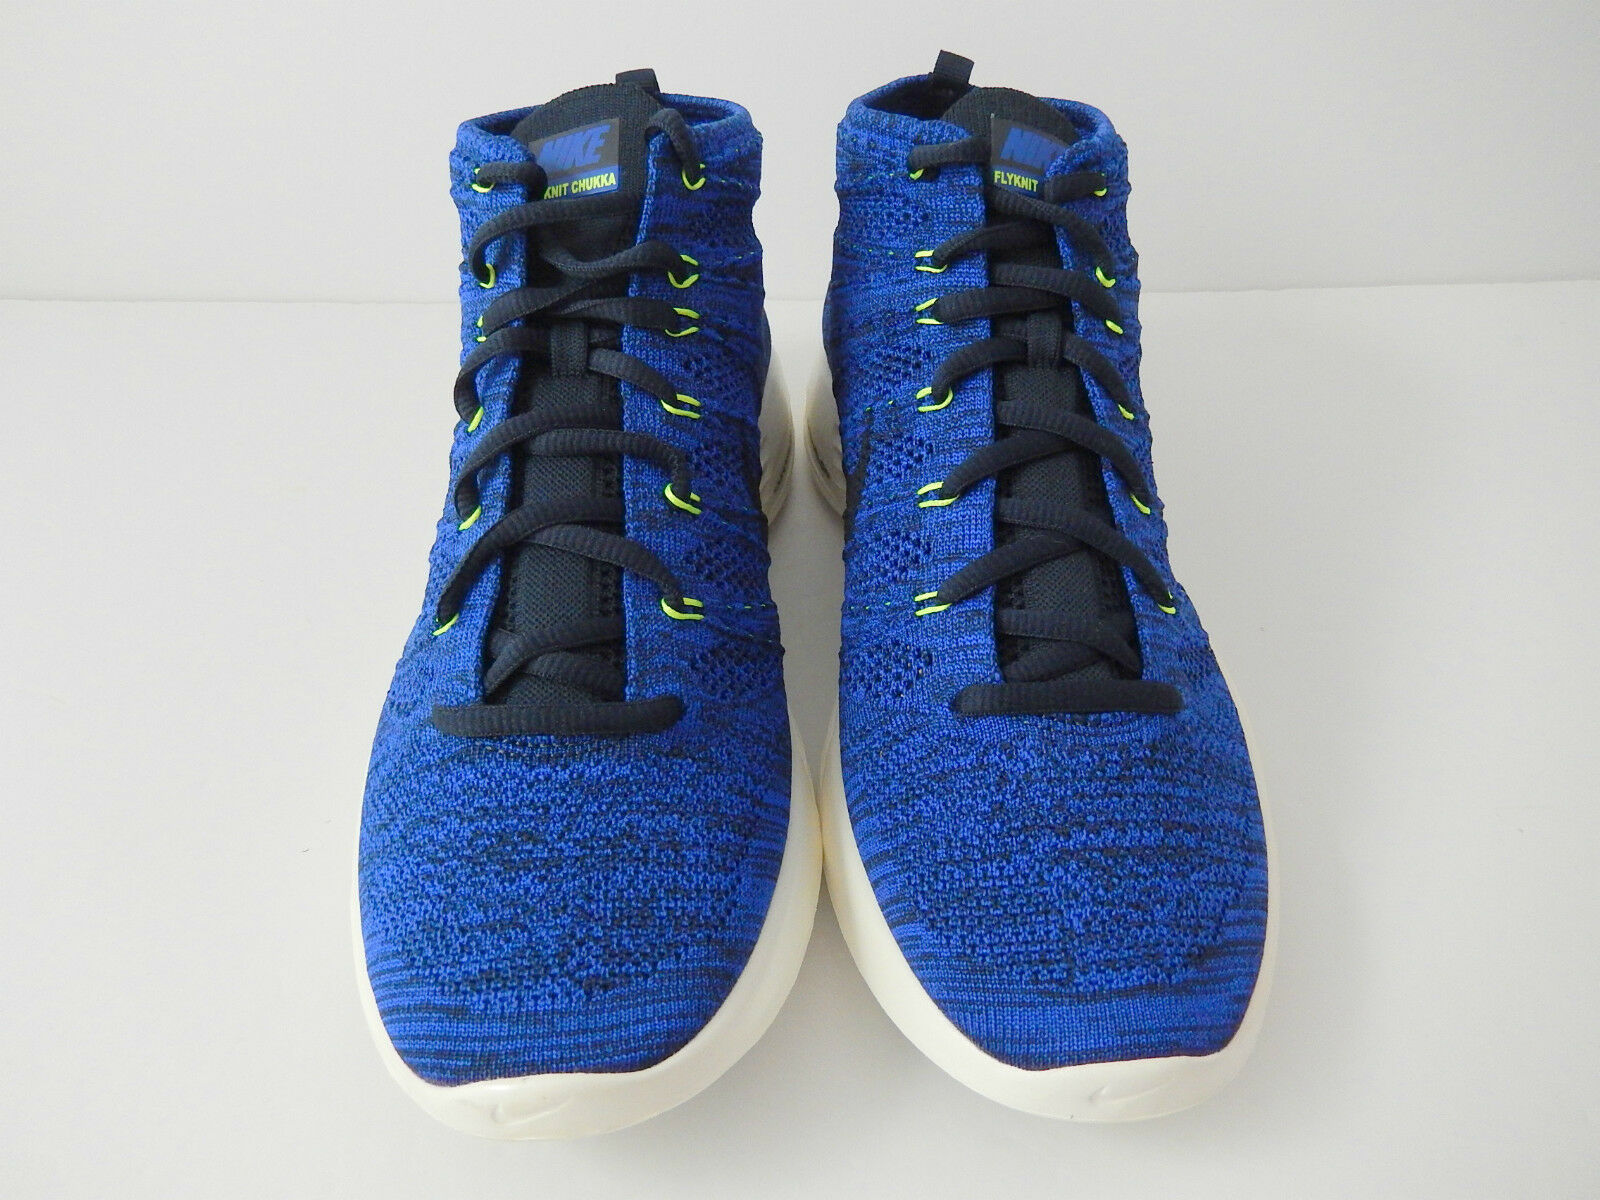 NIKE ROYAL LUNAR FLYKNIT CHUKKA DARK OBSIDIAN-GAME ROYAL NIKE BLUE SZ 9.5 [554969-444] 5e806f